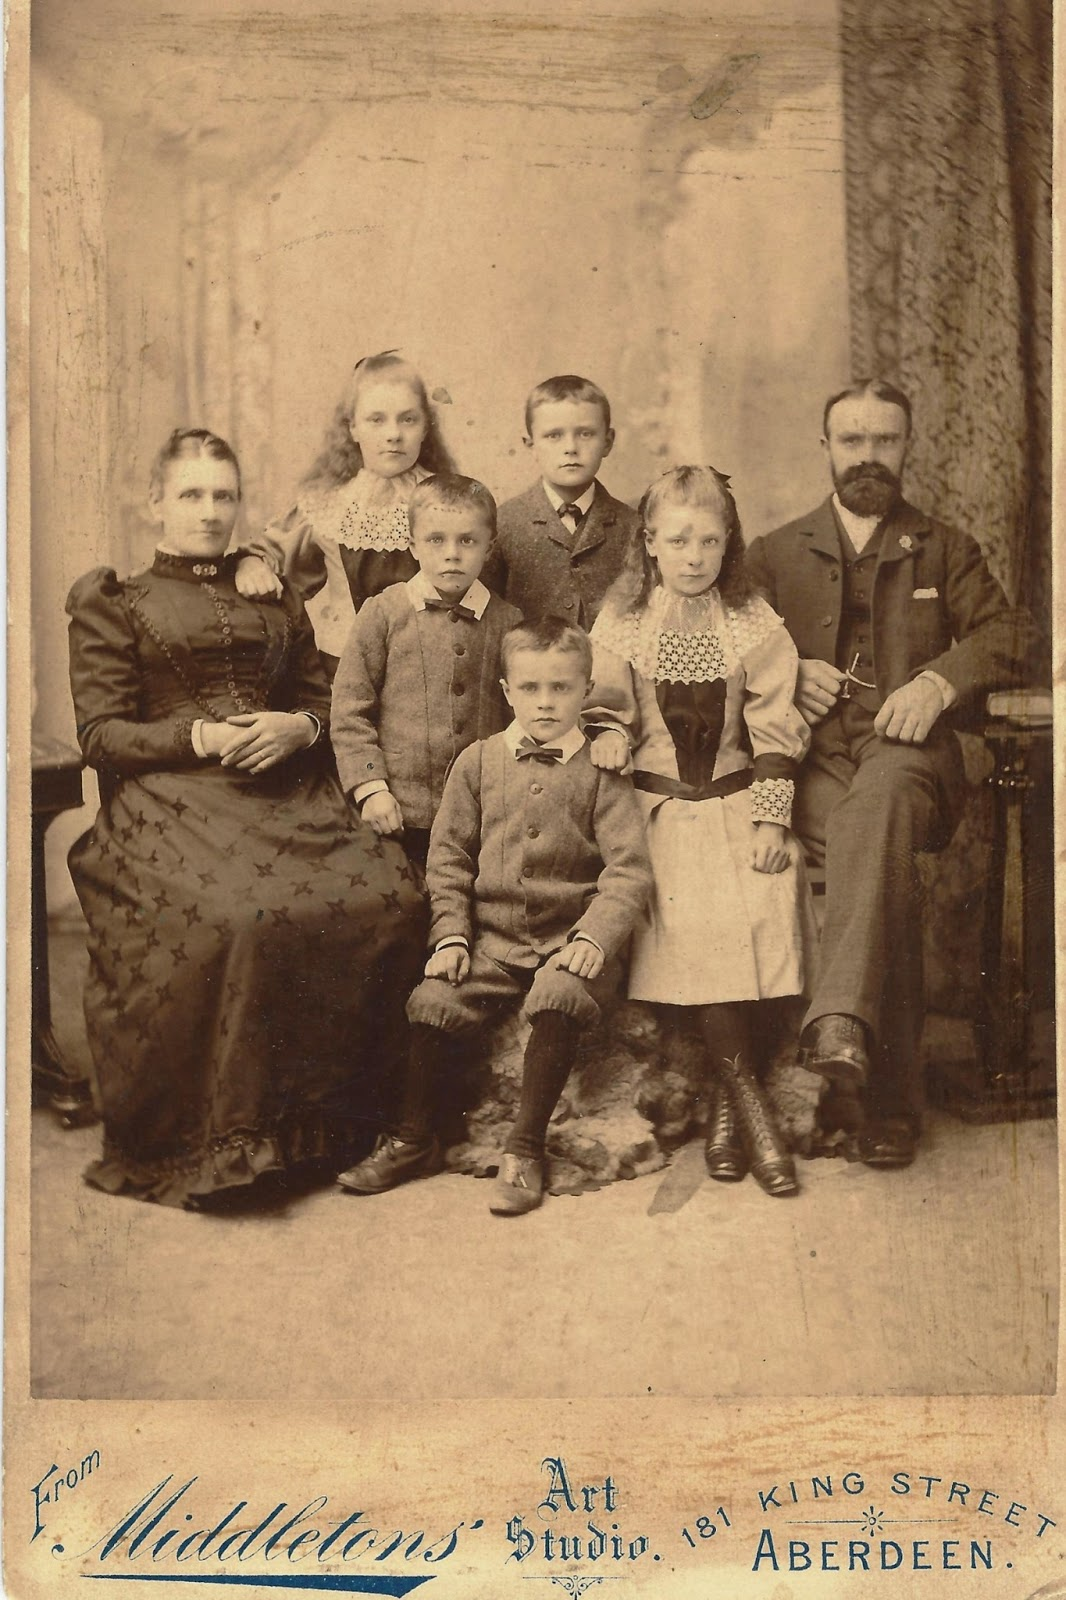 lindquist berry a family research project norrie park old mother is christian park norrie father alexander norrie daughters elizabeth my great grandmother and mary sons i think george john and james